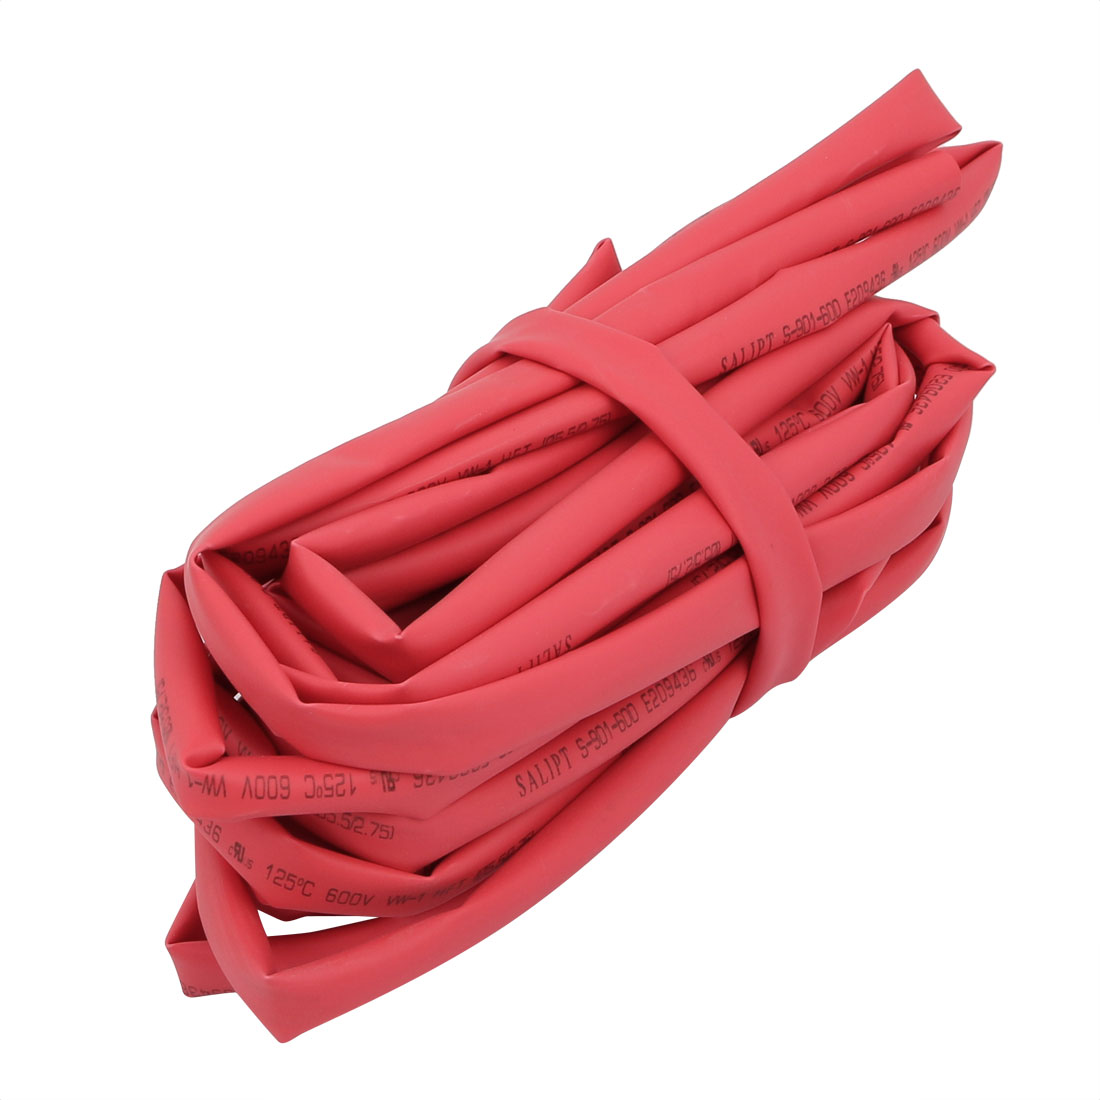 2M Long 5.5mm Inner Dia. Polyolefin Heat Shrinkable Tube Red for Wire Repairing